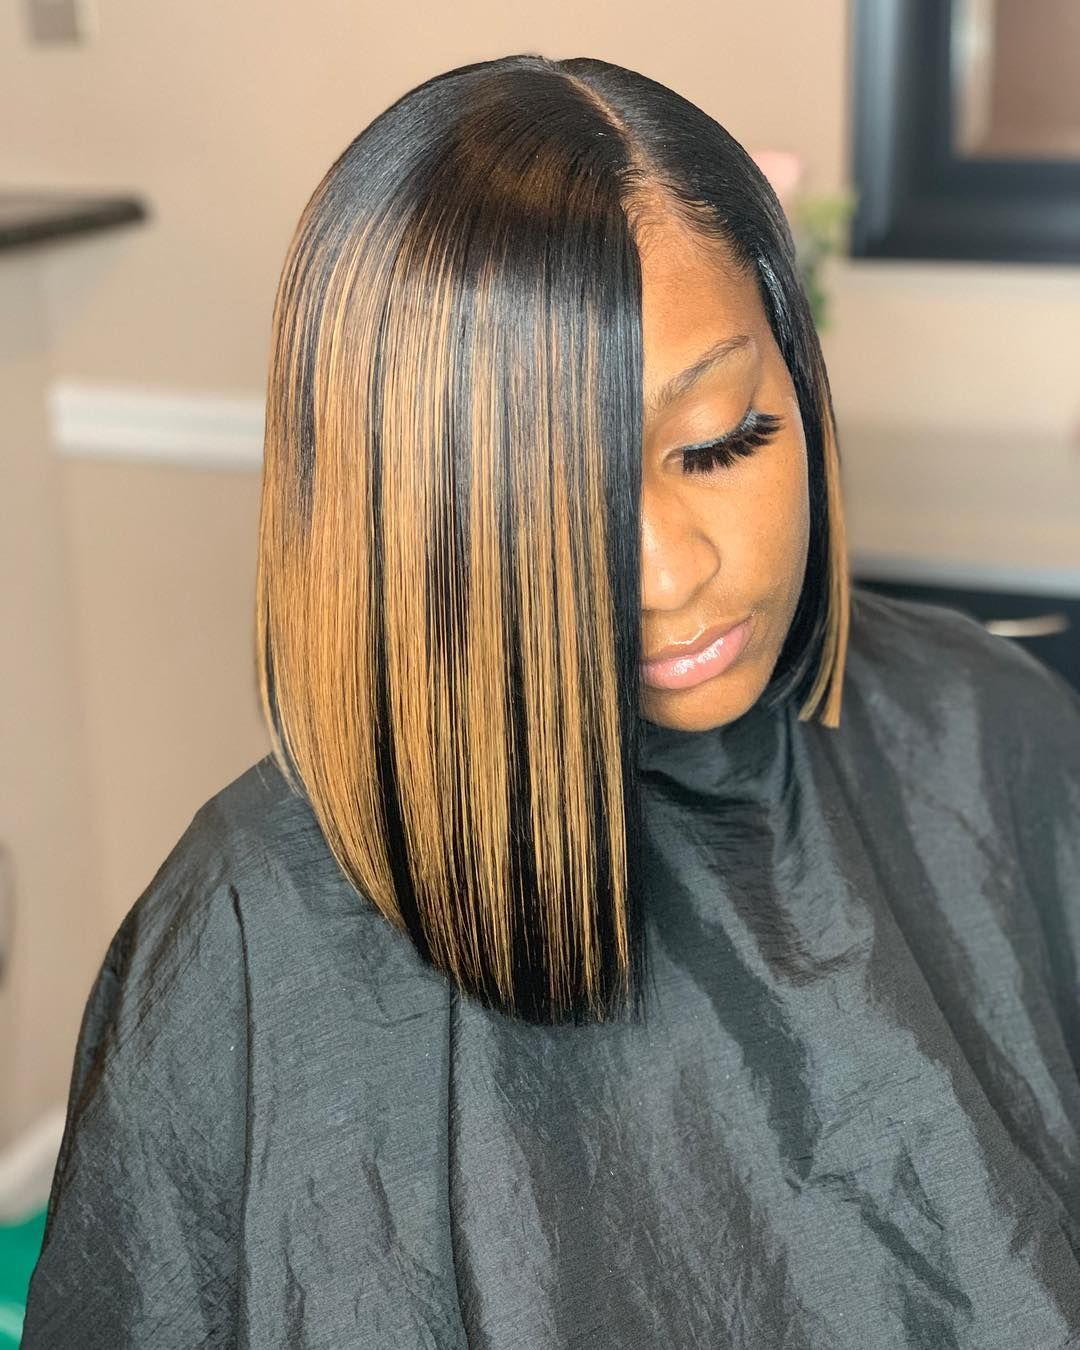 Rich Hair By Rivearra On Instagram It S About That Season Quick Weave Leave Out Quick Weave Hairstyles Weave Bob Hairstyles Quick Weave Hairstyles Bobs